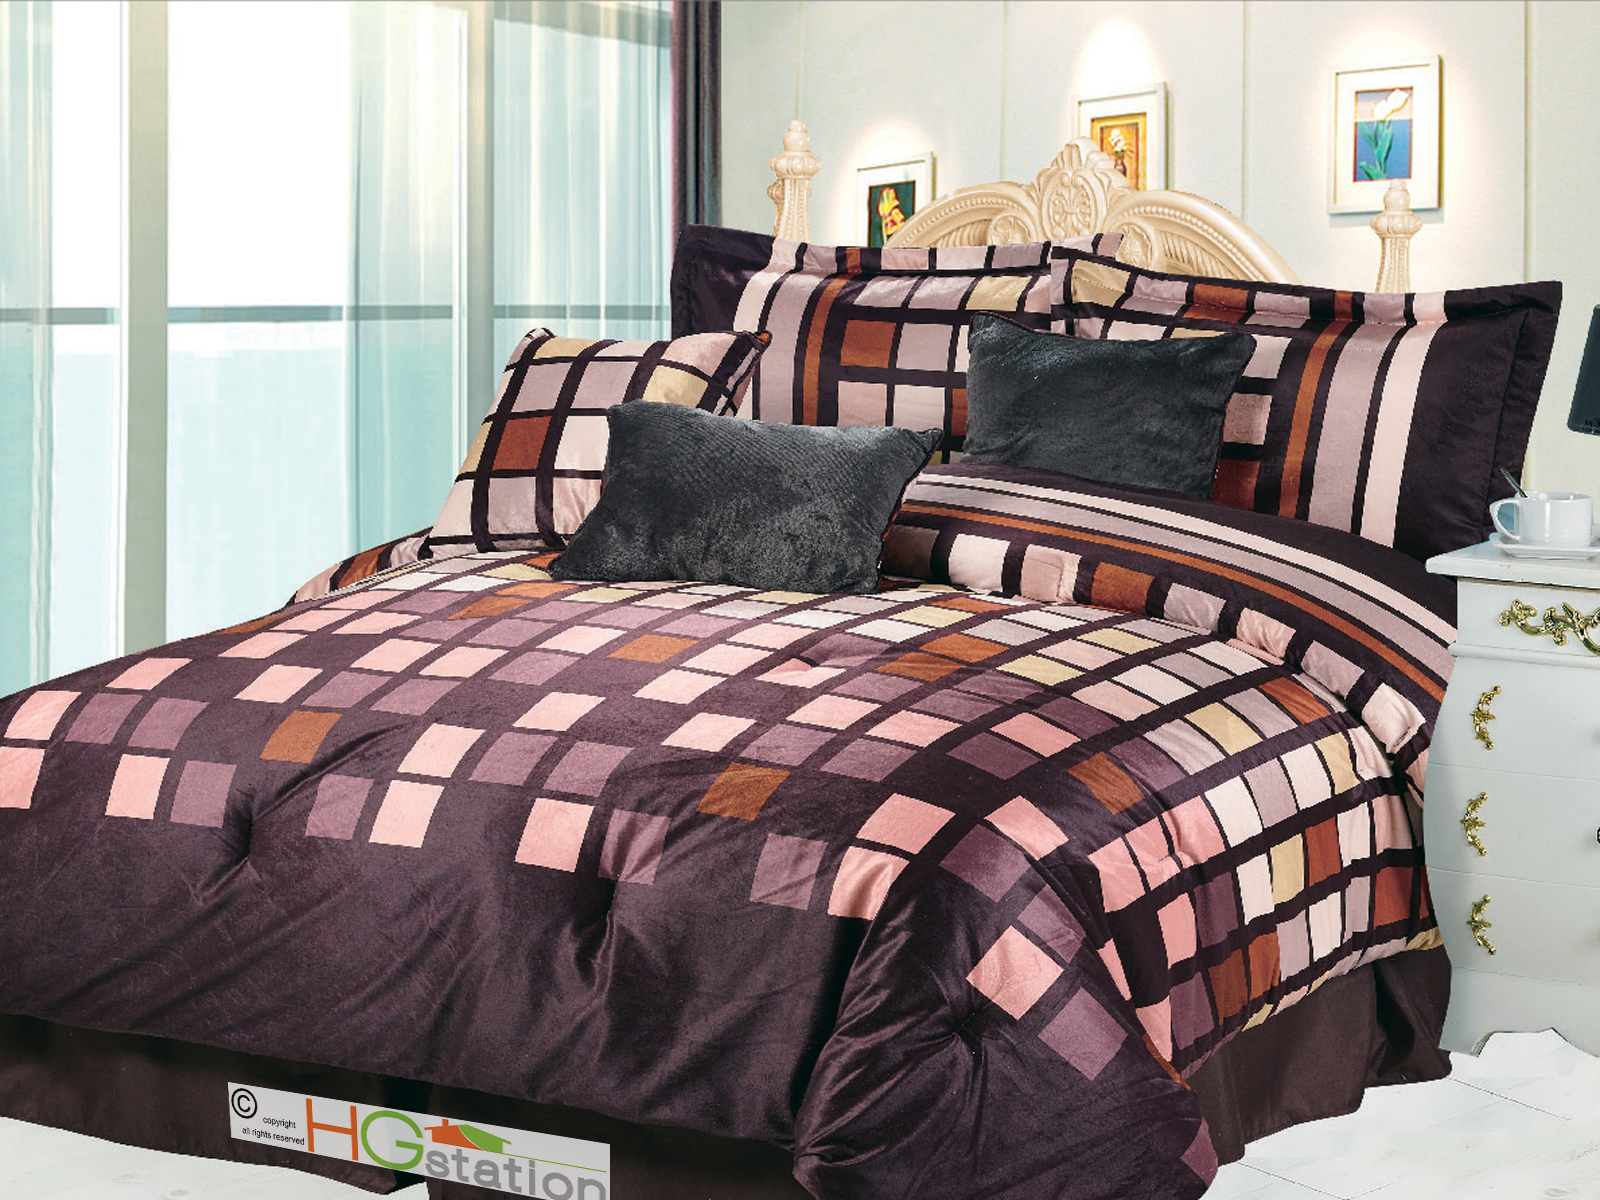 7 Pc Square Patchwork Striped Faux Fur Comforter Set Brown